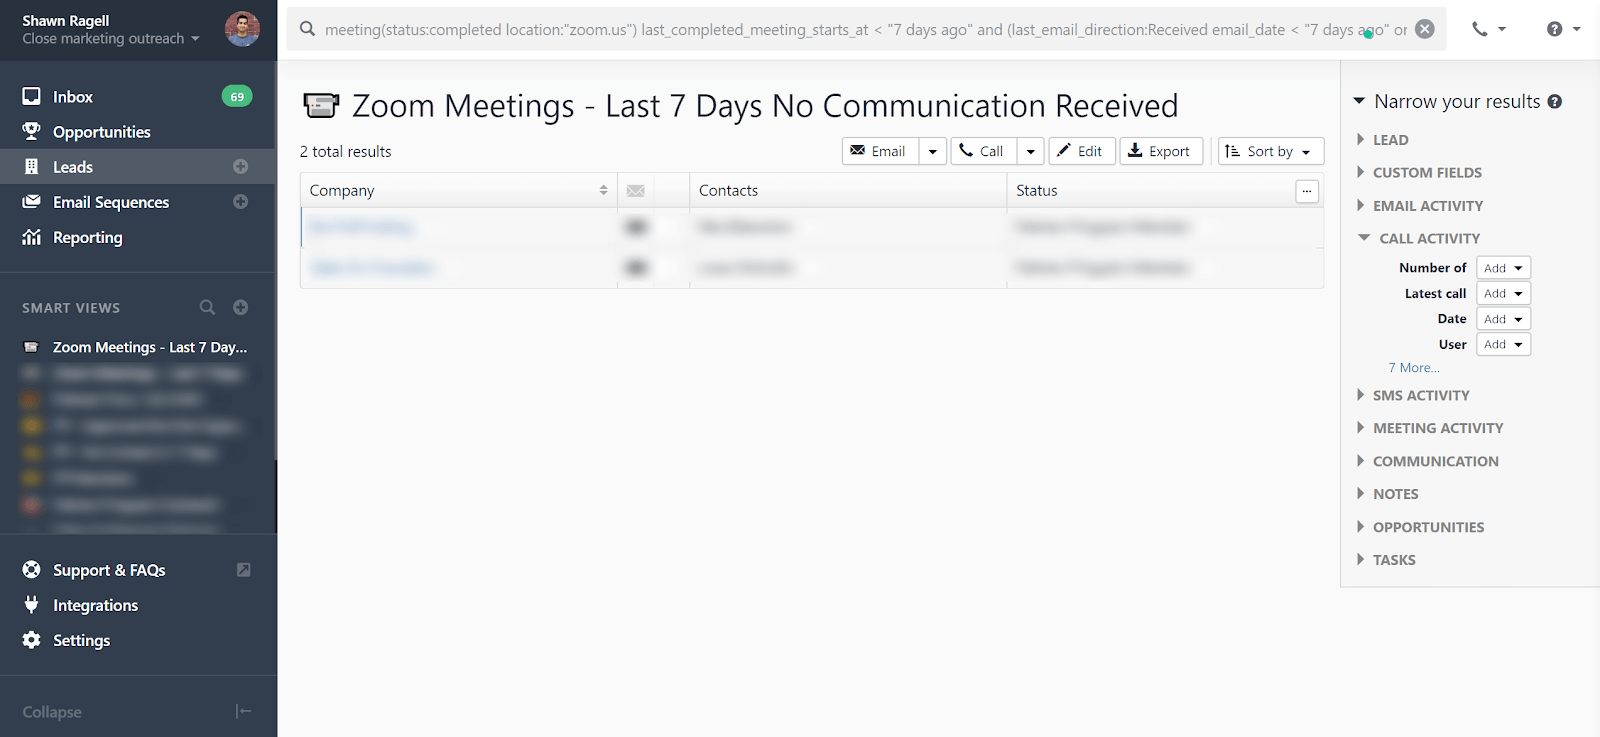 zoom meetings last 7 days no communication recieved